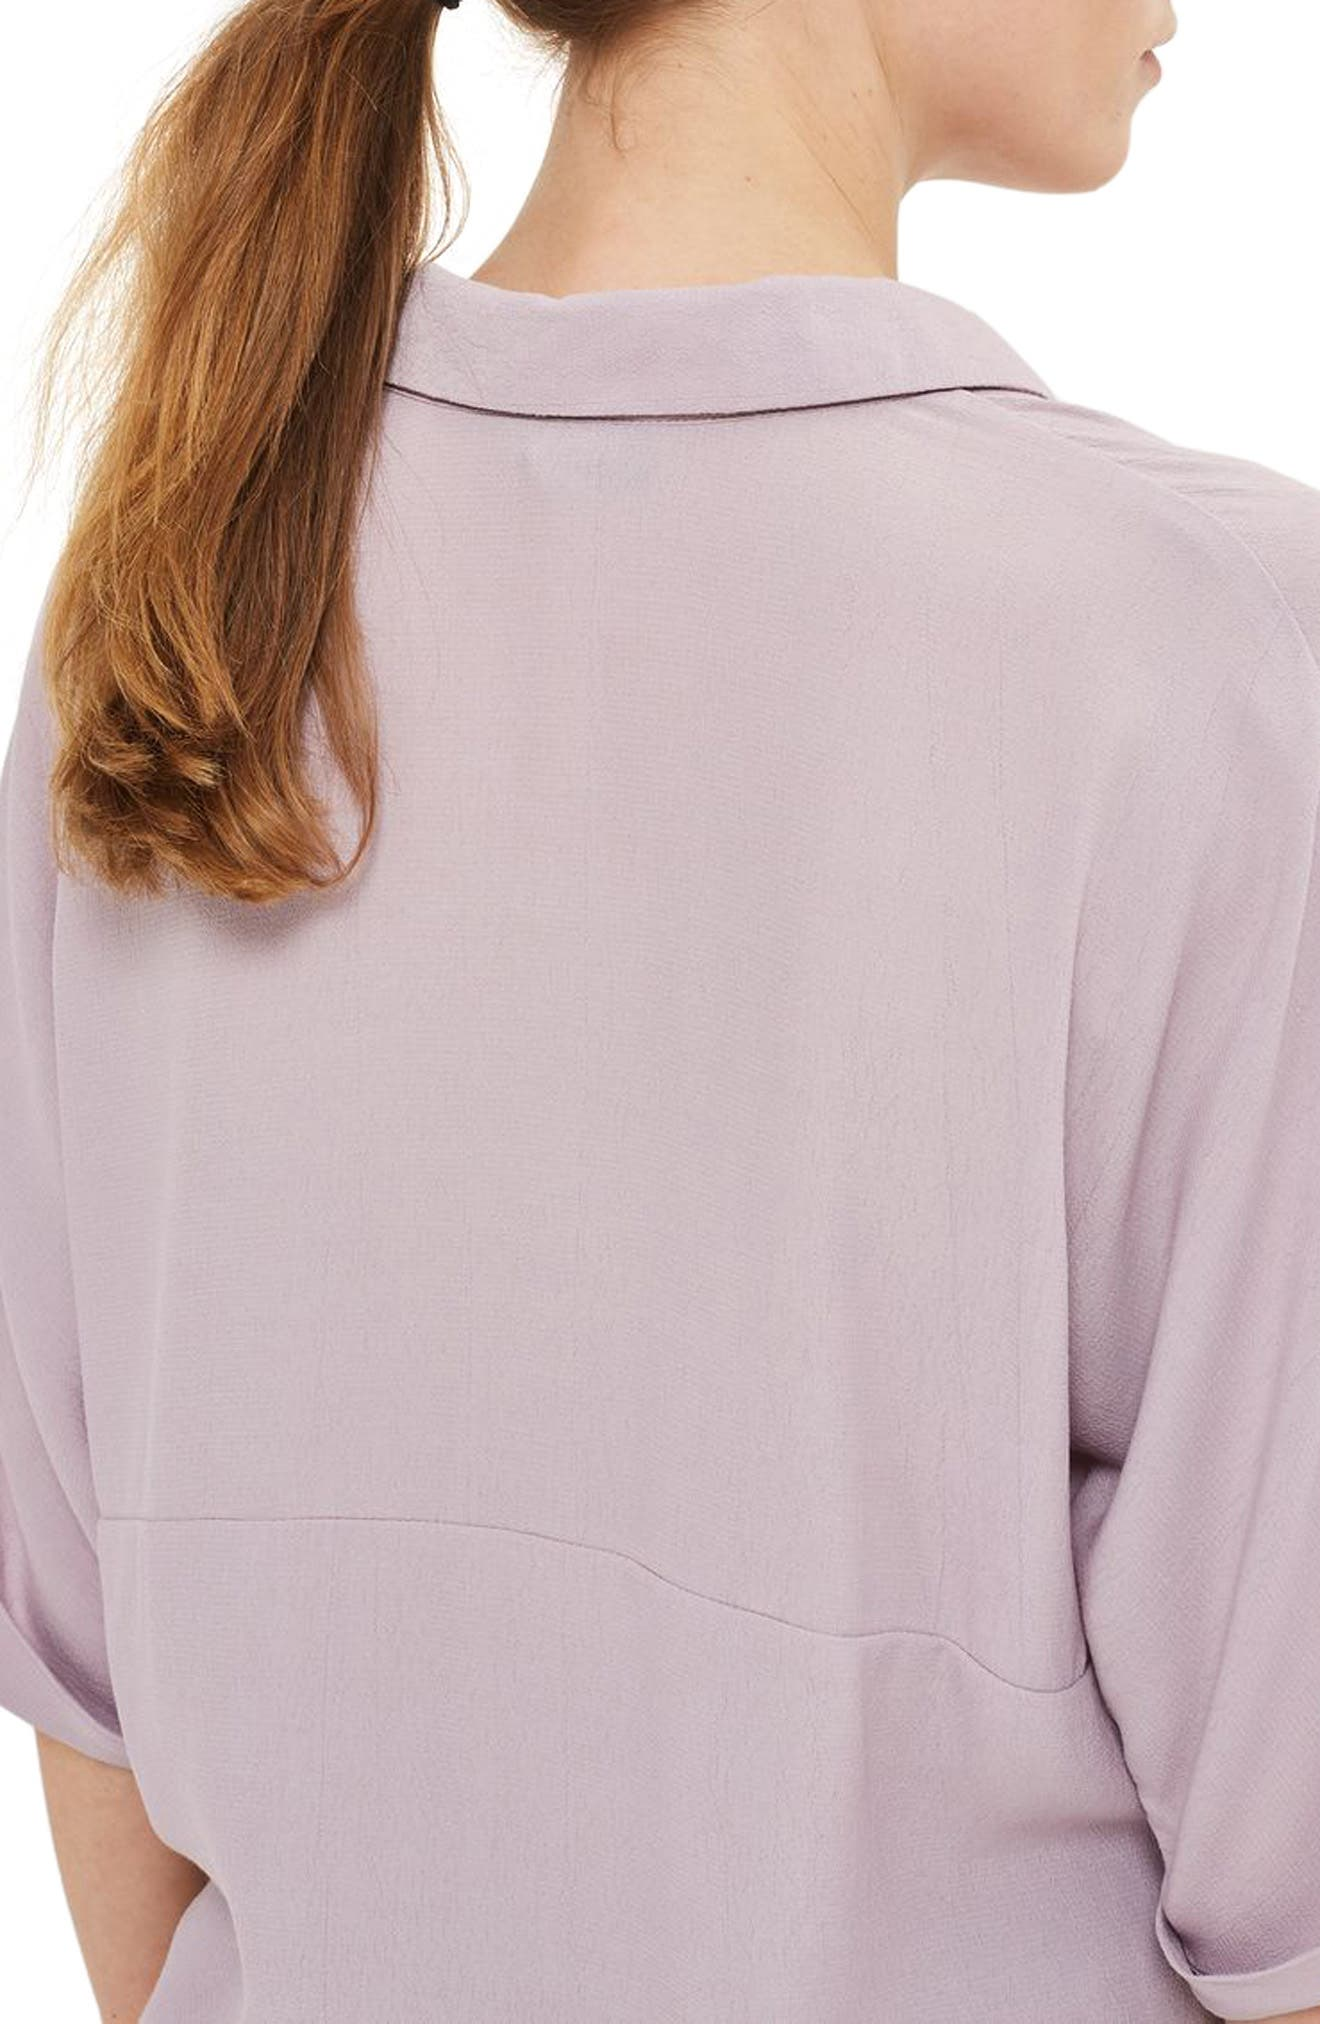 Kady Roll Sleeve Maternity Top,                             Alternate thumbnail 3, color,                             Lilac